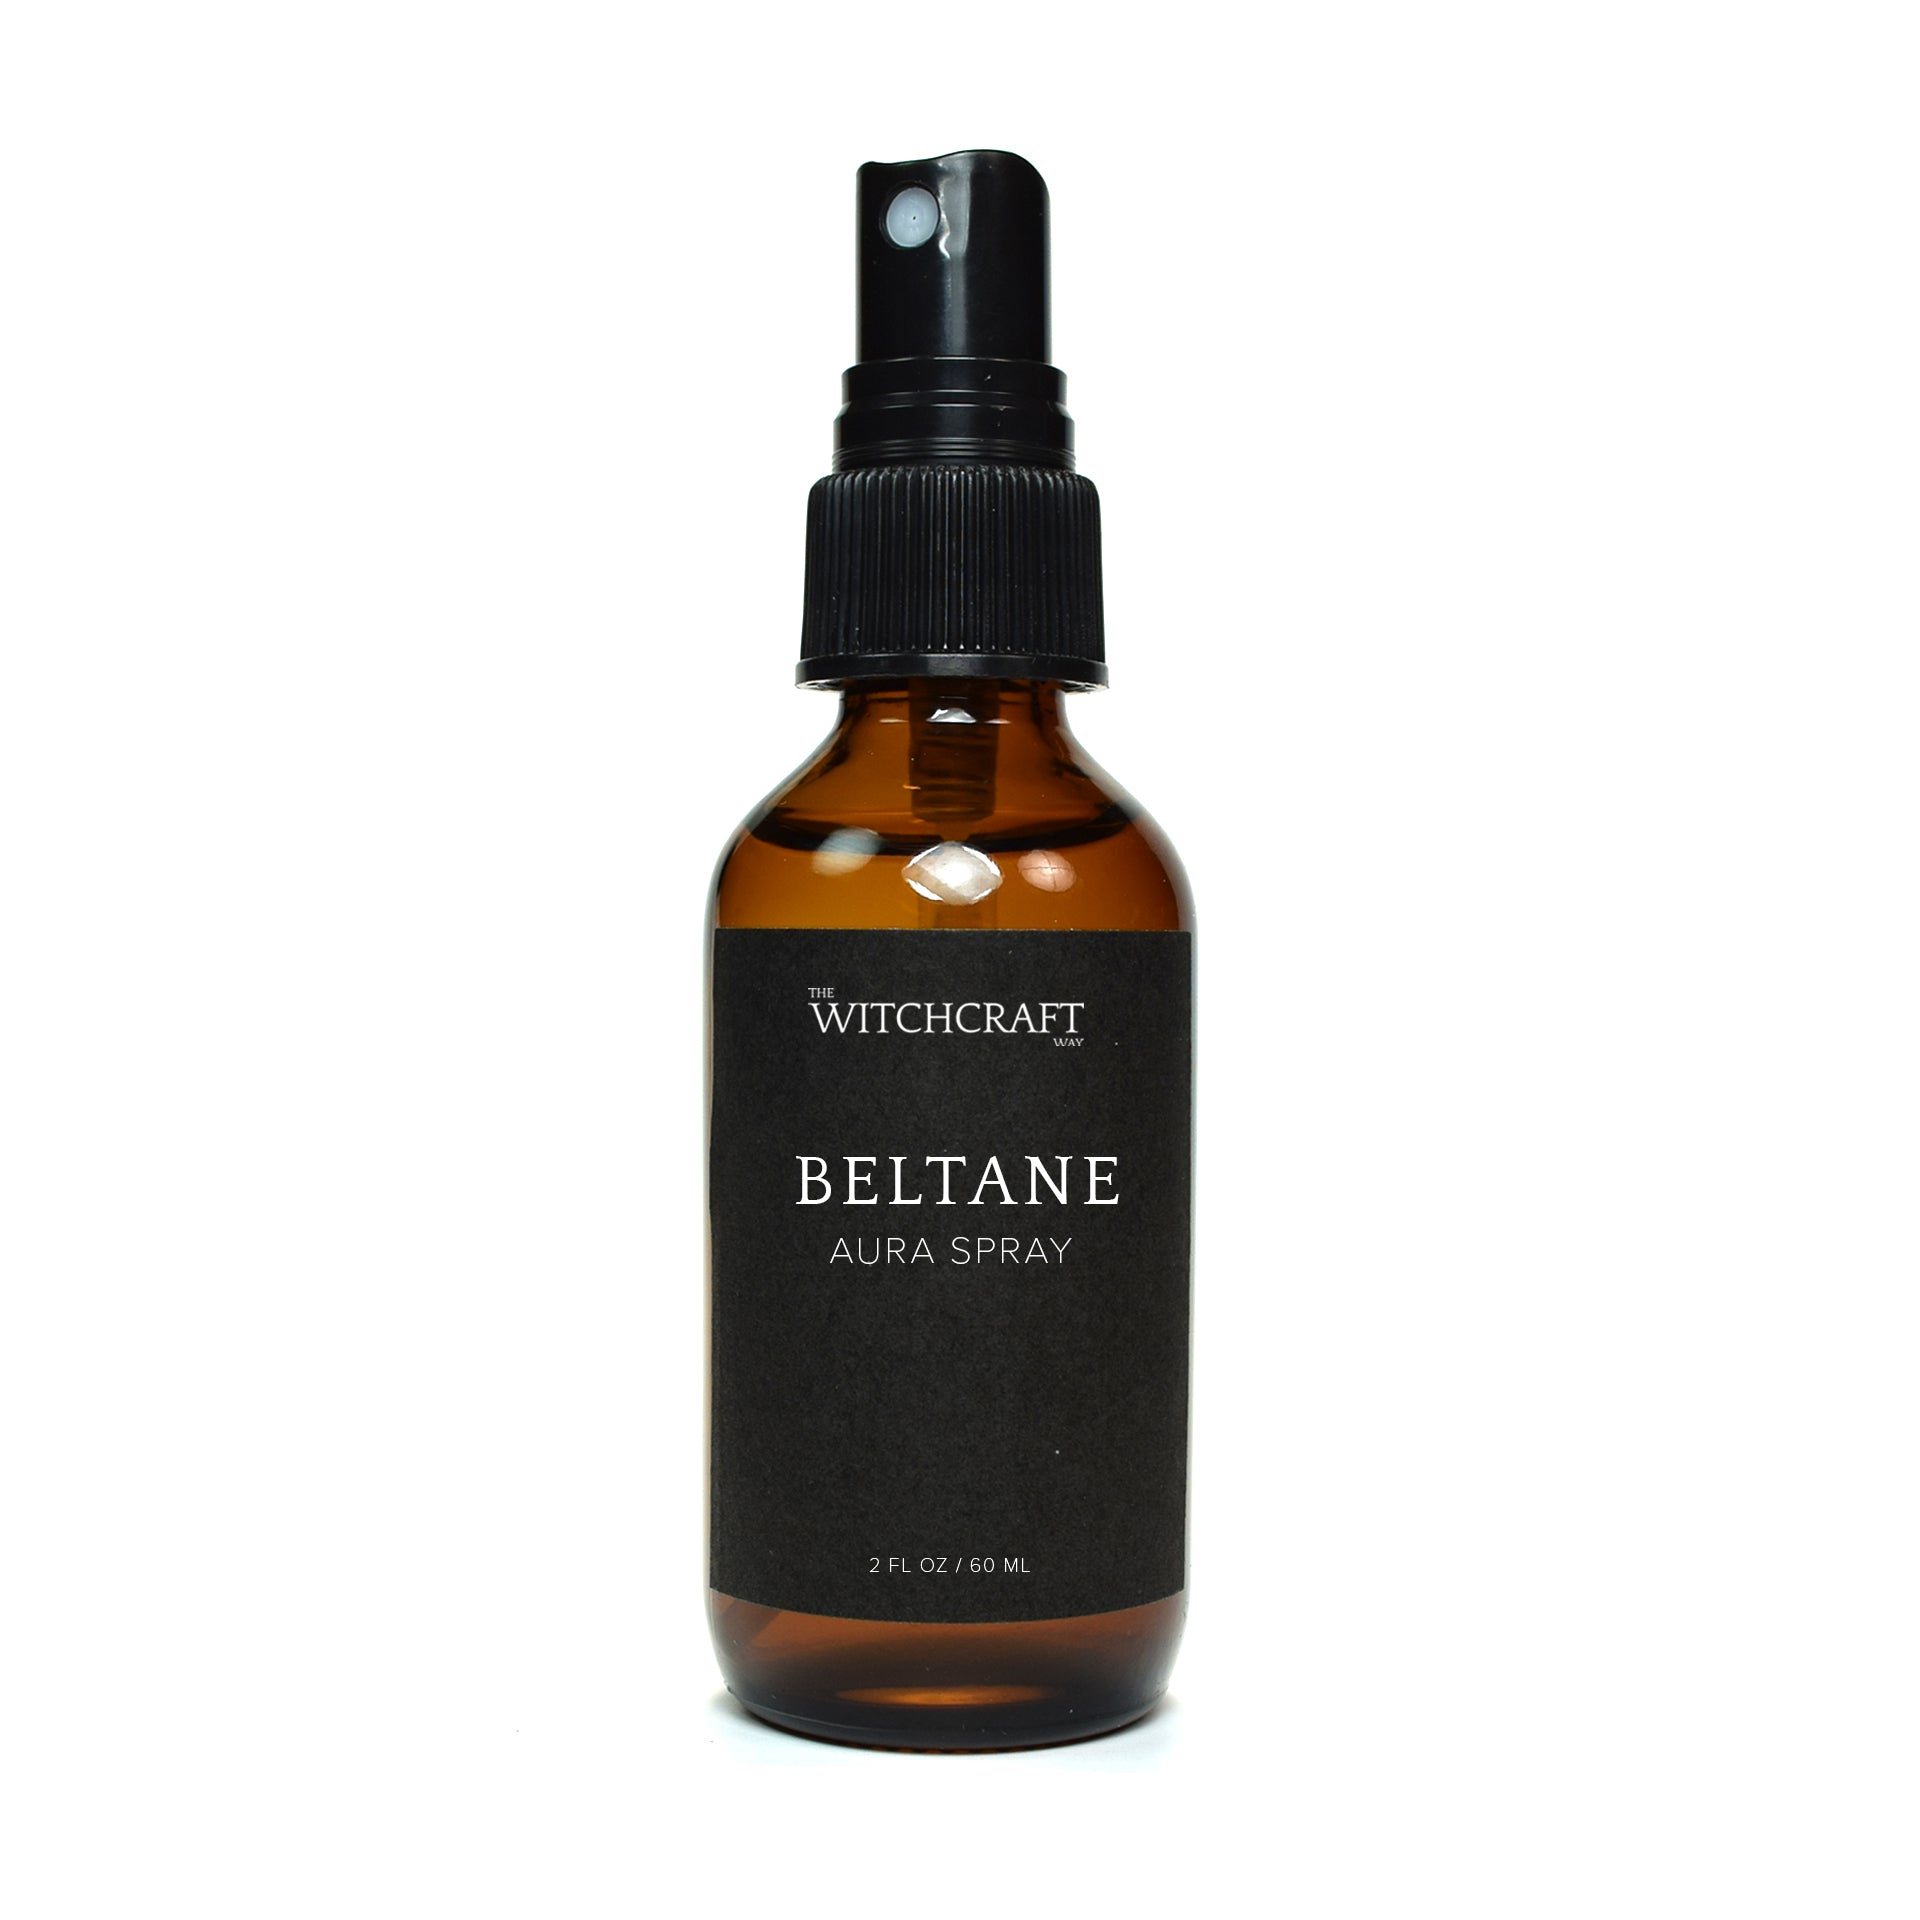 Beltane Aura Spray